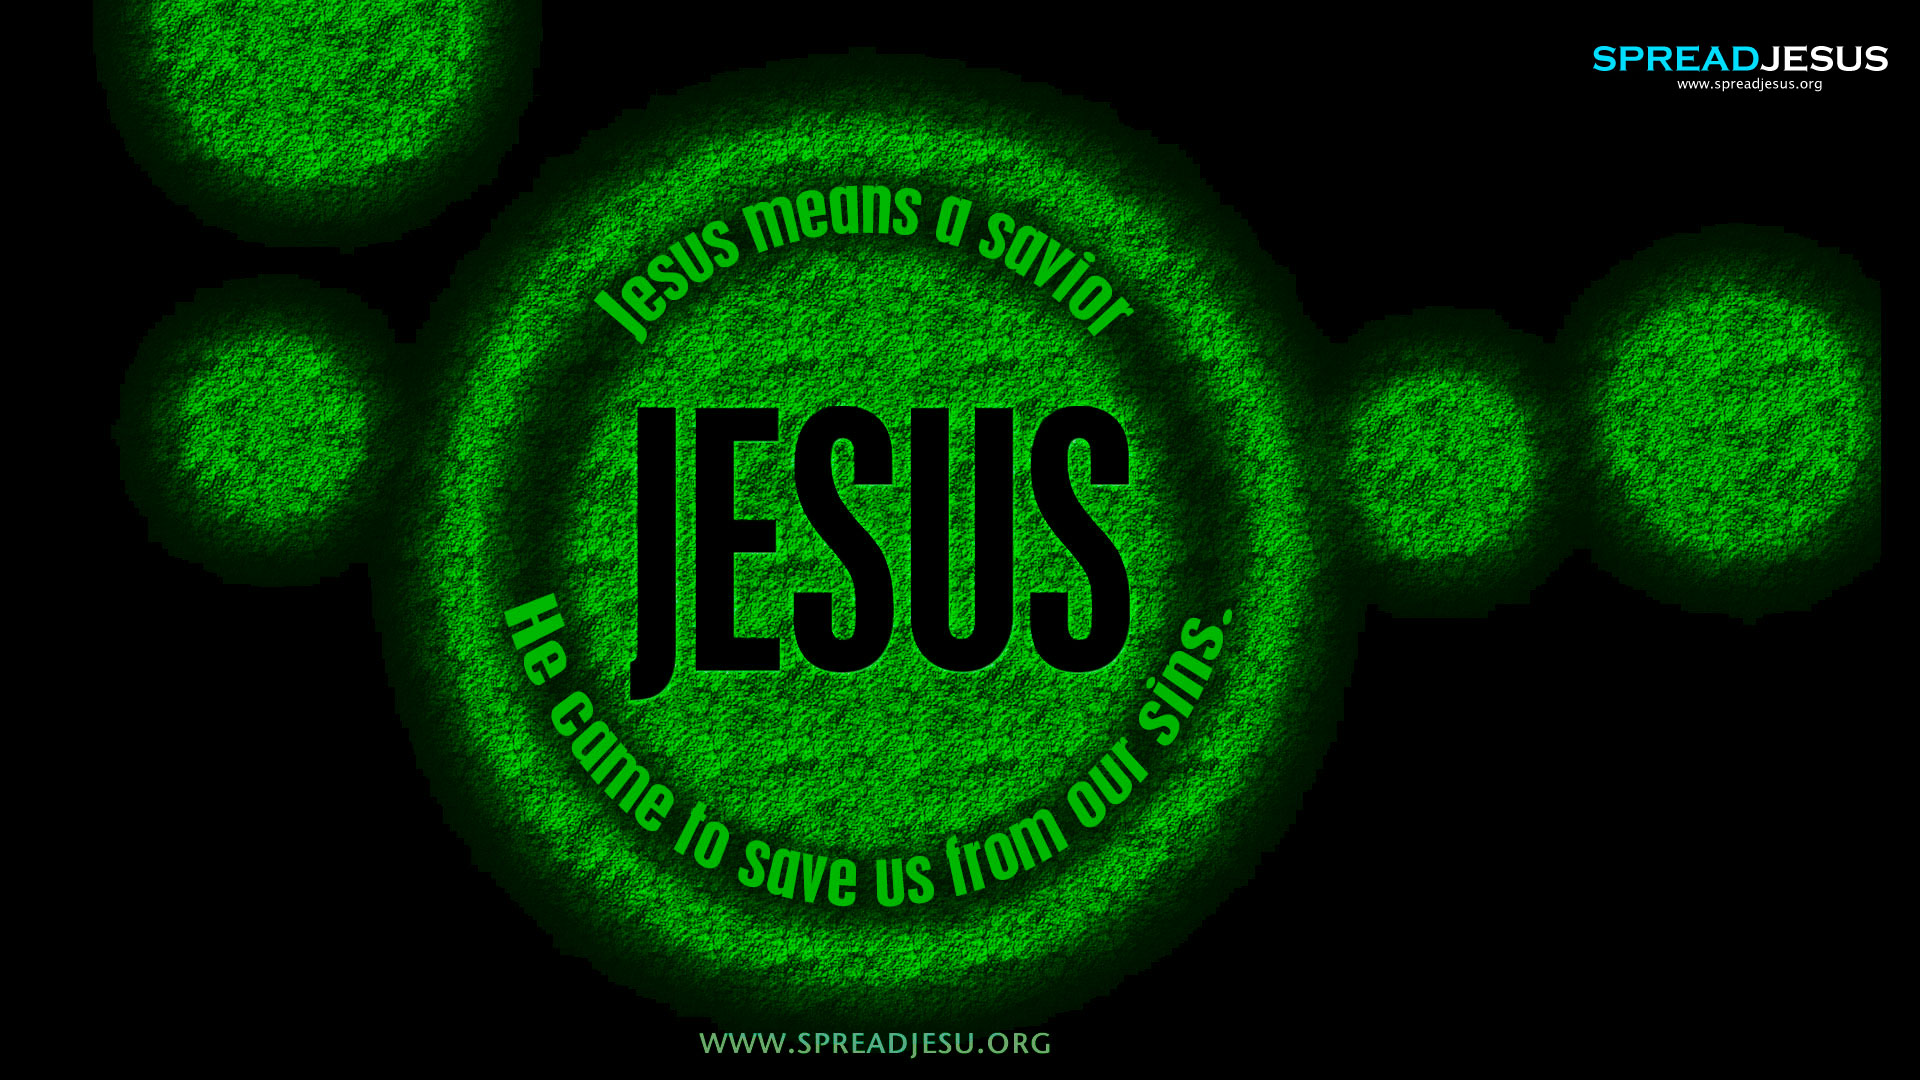 Jesus Means A Savior HD wallpapers free downloading Jesus Means A Savior He came to Save us from our Sins HD wallpaper 4 VIEW AND DOWNLOAD